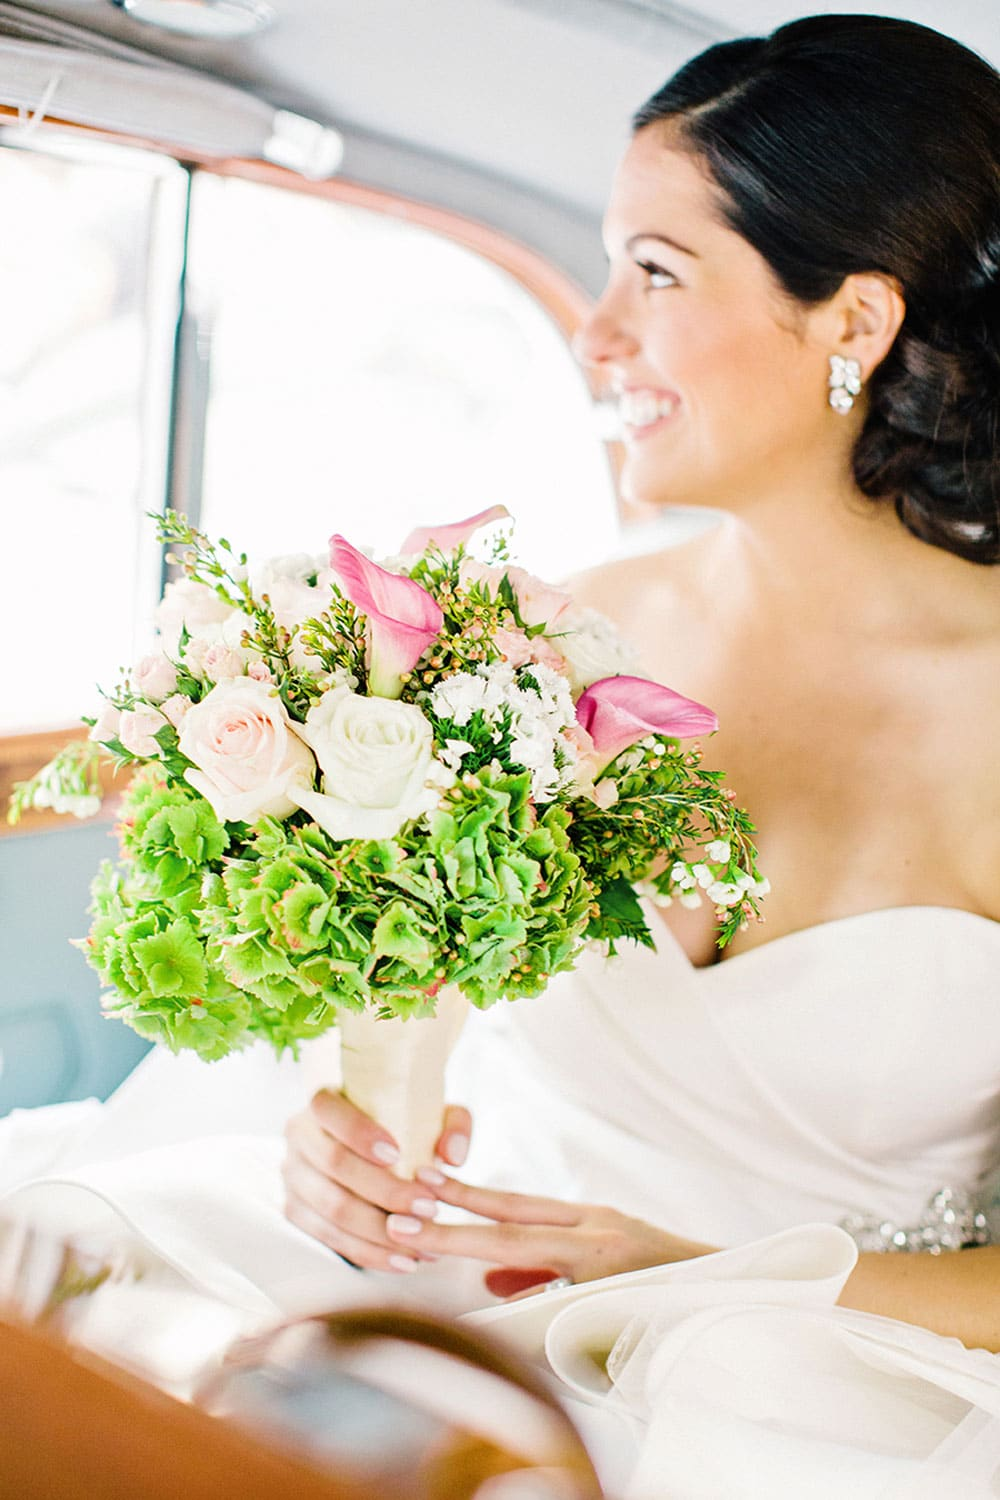 Bride Holding Bouquet in Boston Wedding Photo